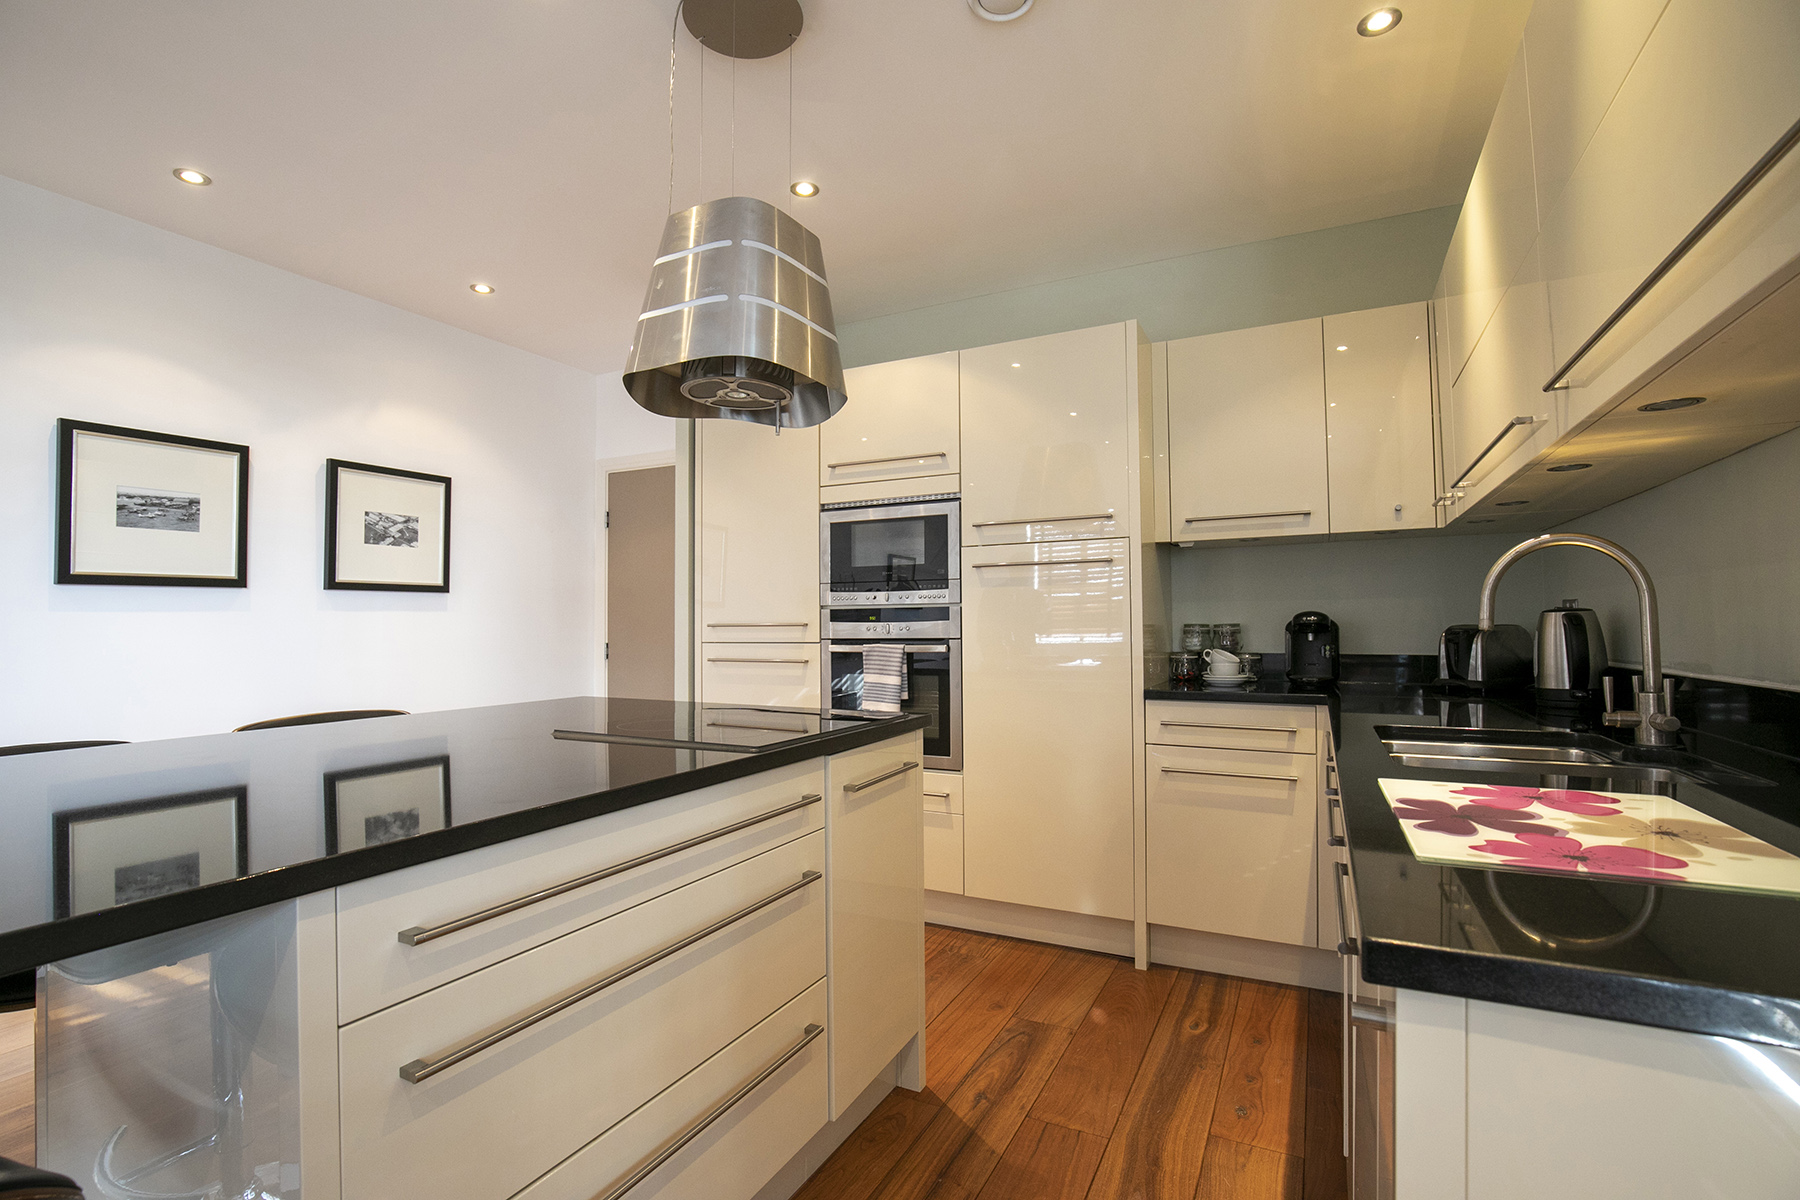 Oven at Wallis Square Apartments, Centre, Farnborough - Citybase Apartments